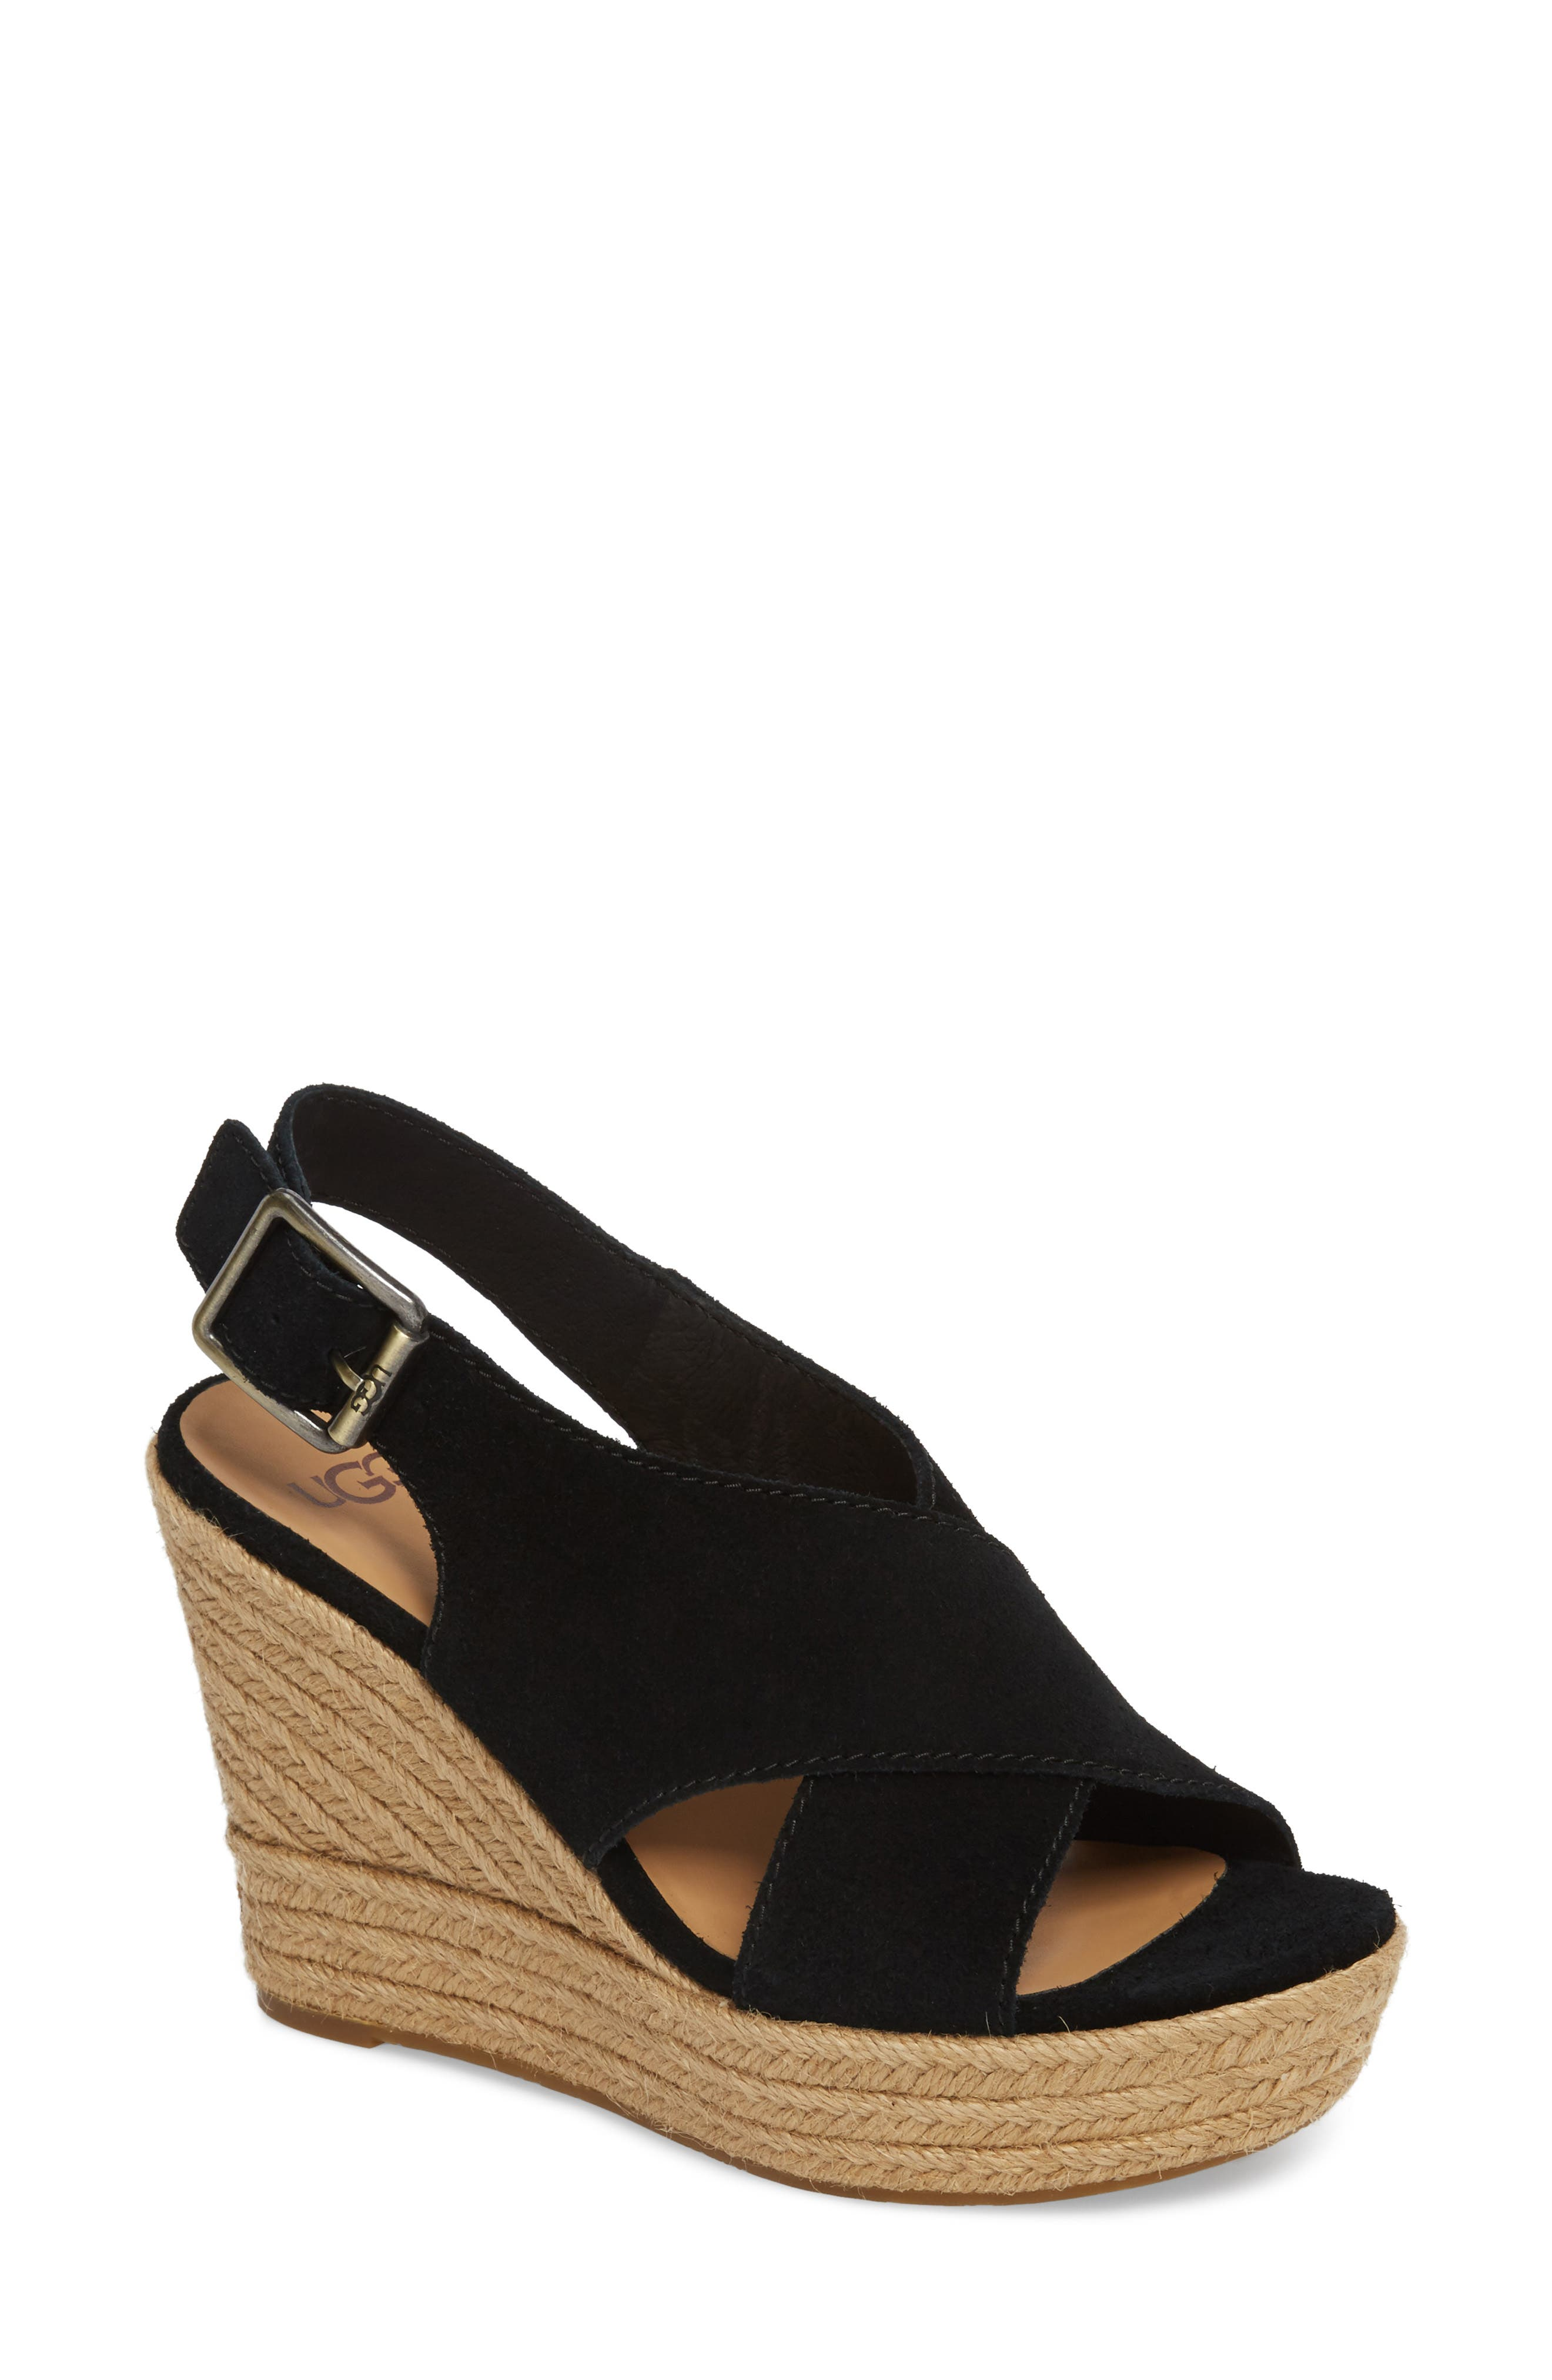 Harlow Platform Wedge Sandal,                             Main thumbnail 1, color,                             001